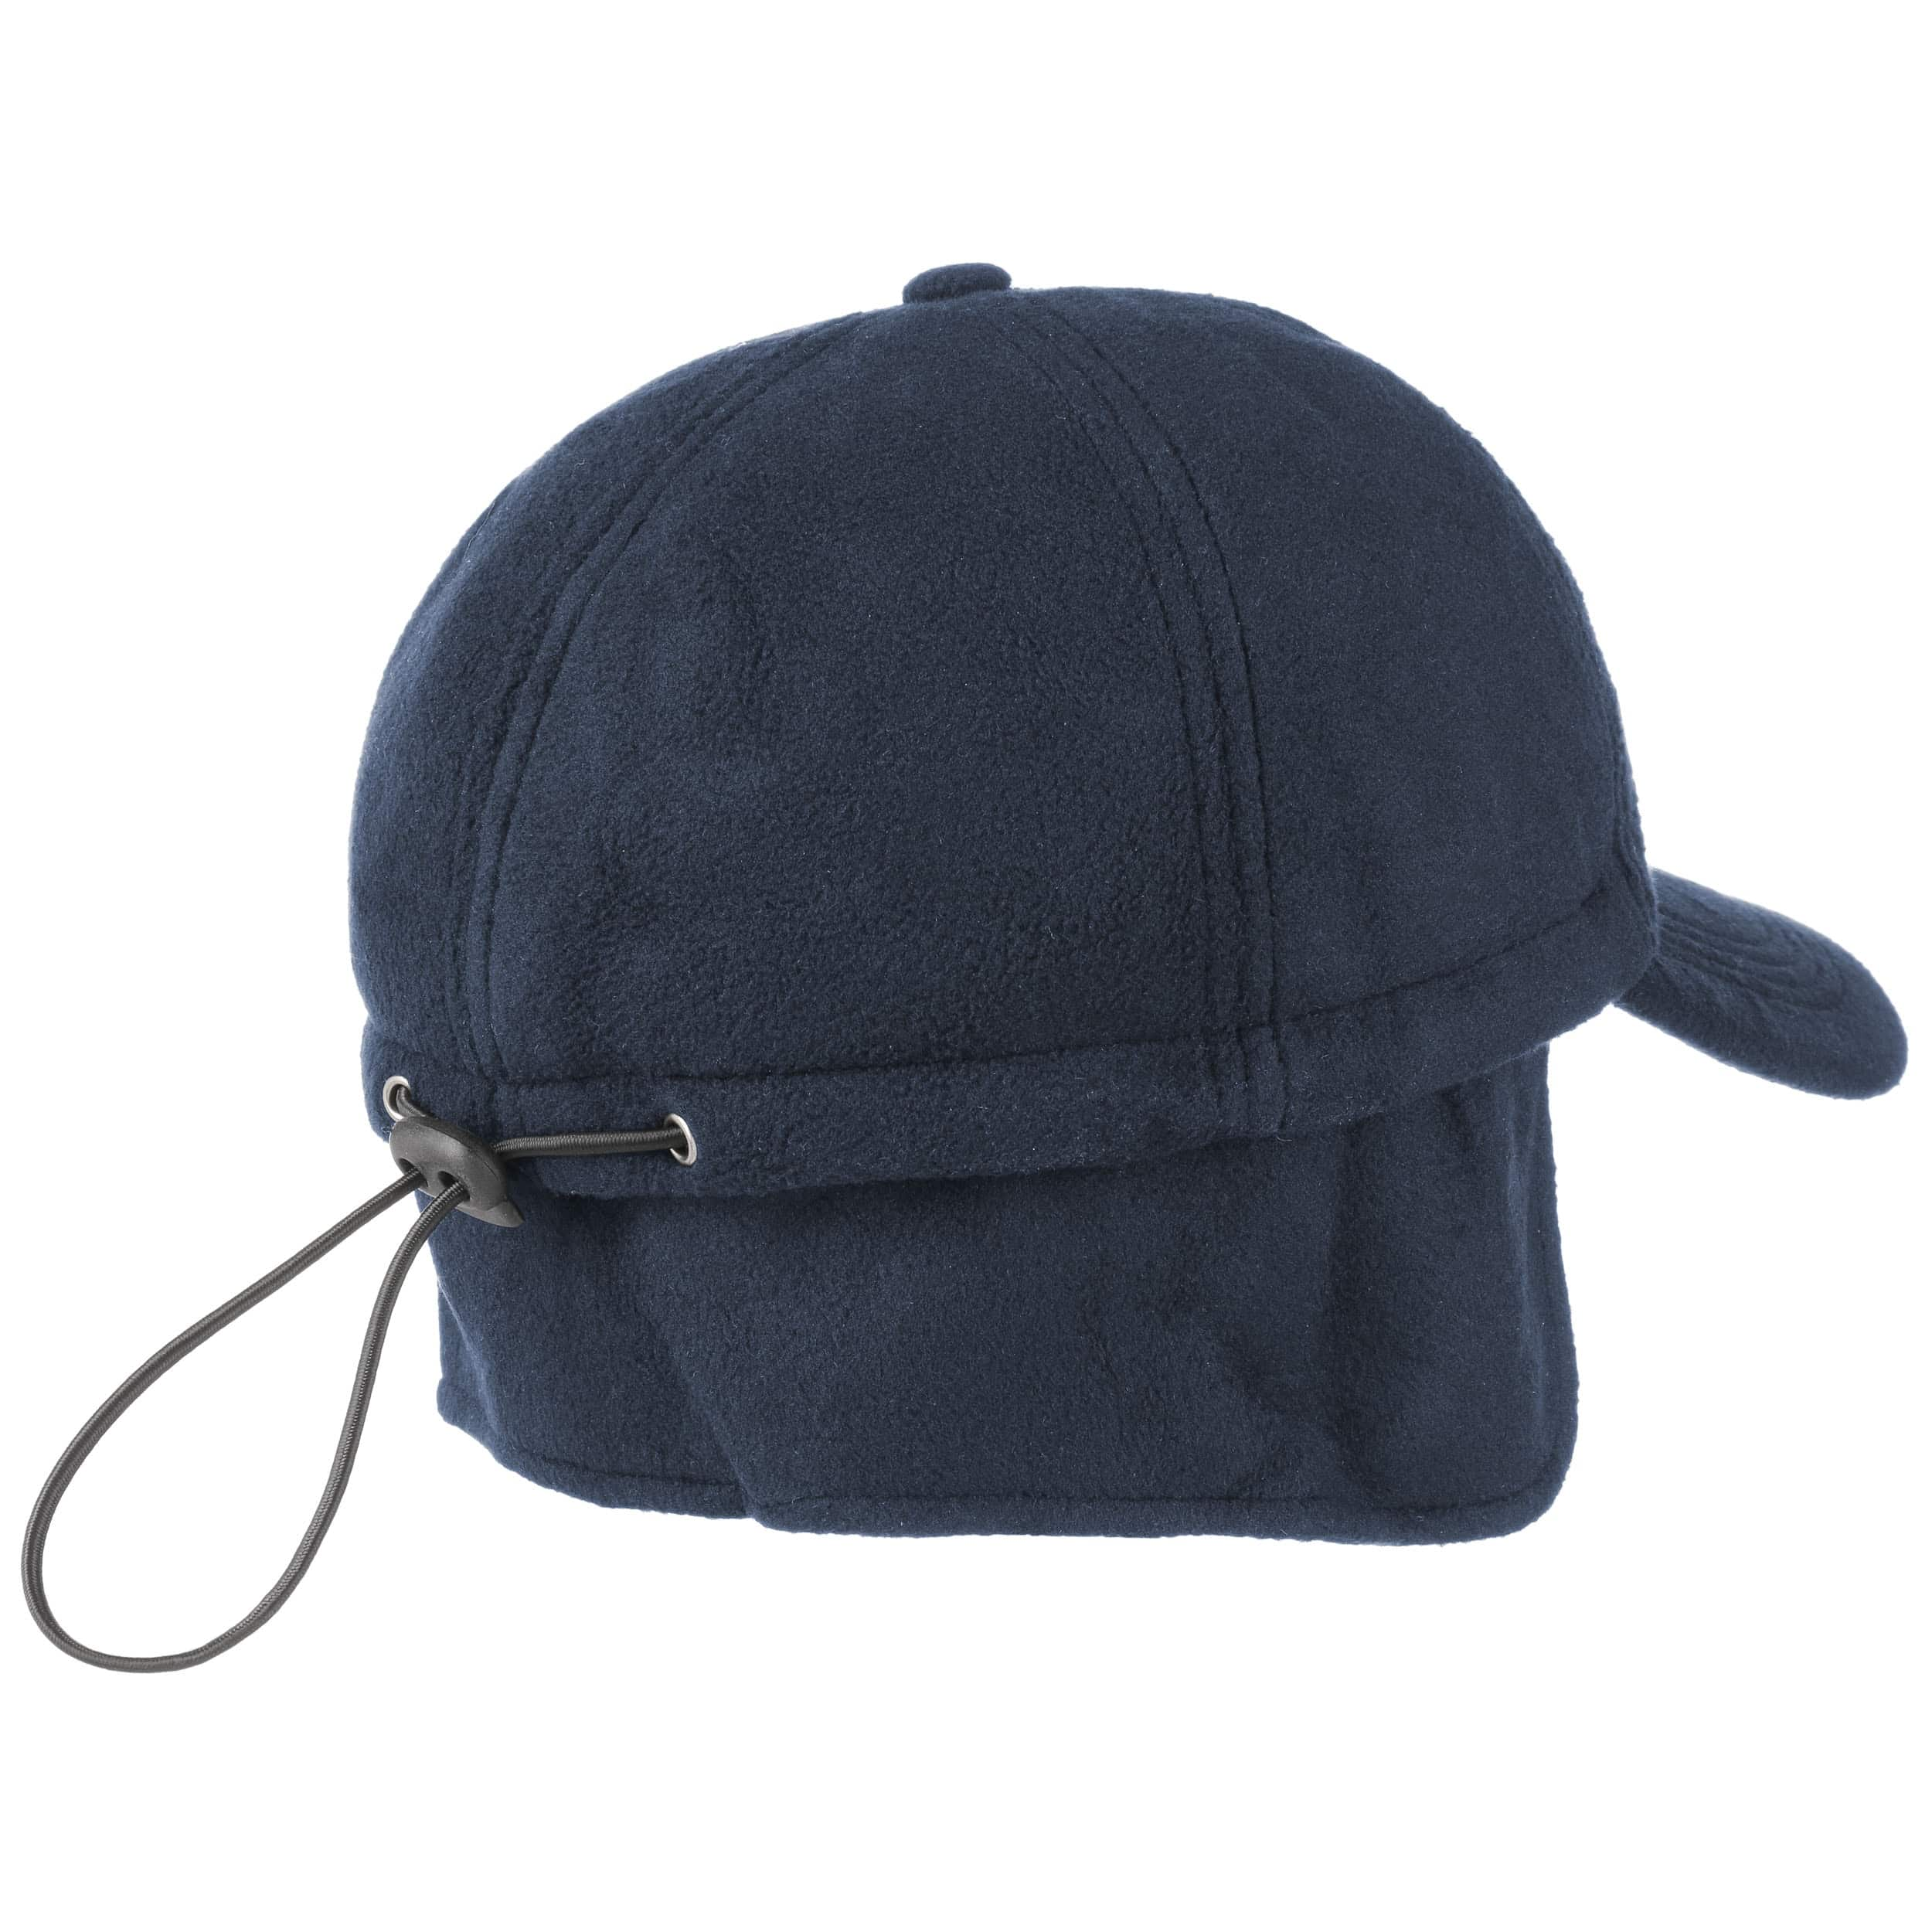 7a2f49b2eef11 ... Snow Fleece Baseball Cap with Earflaps - blue 1 ...